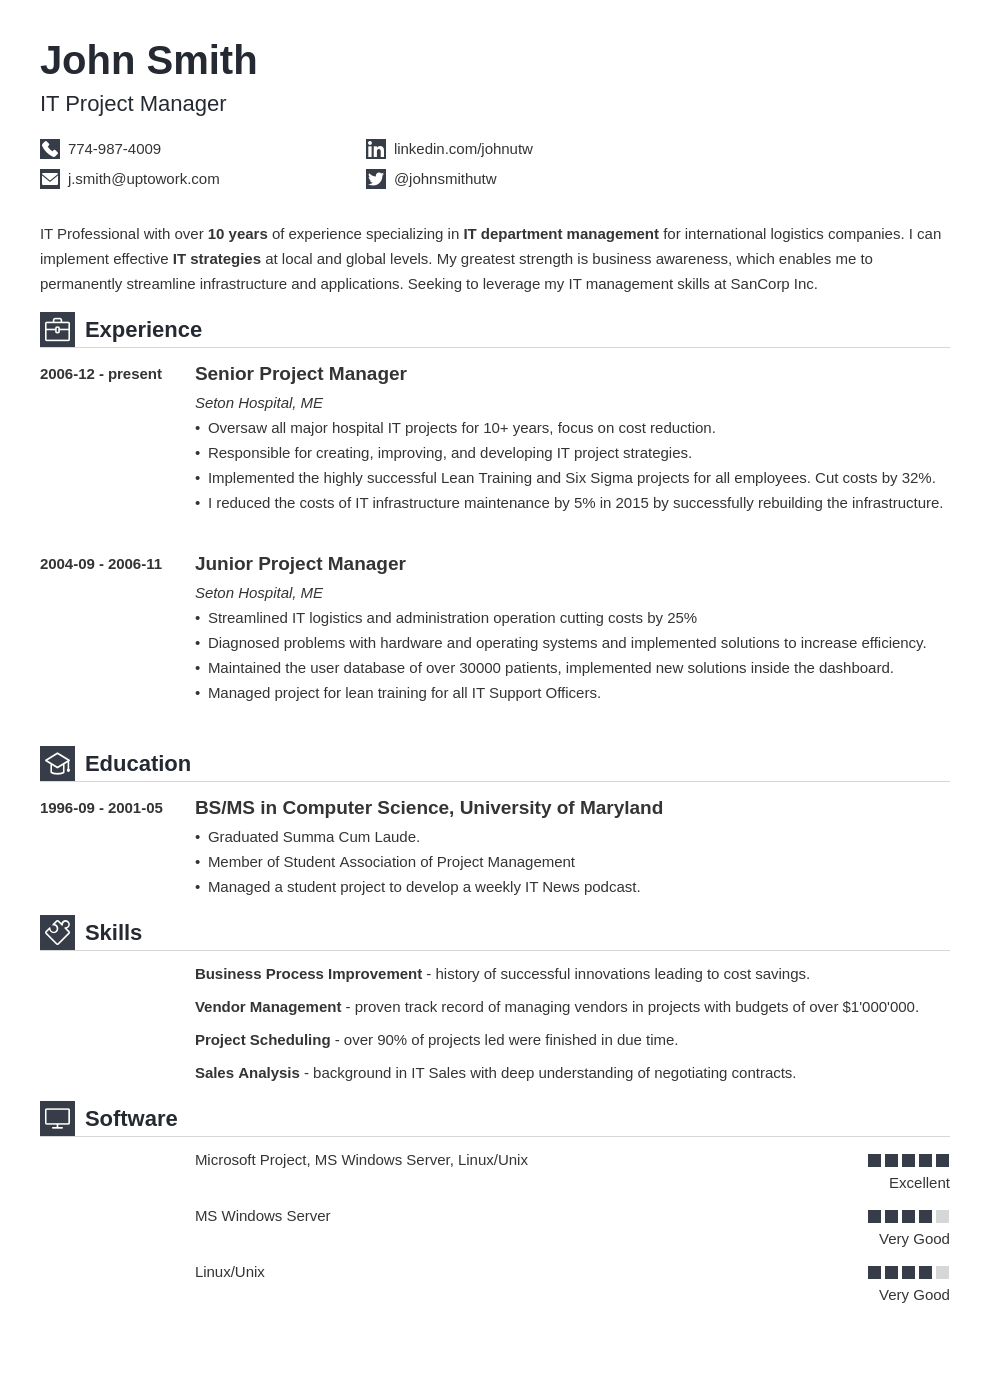 Professional Resume Template Iconic. template resume 1. bw classic 20. dark blue timeless. resume template with photo. executive resume samples 2017 executive template resume professional executive job executive resume examples resume ideas for